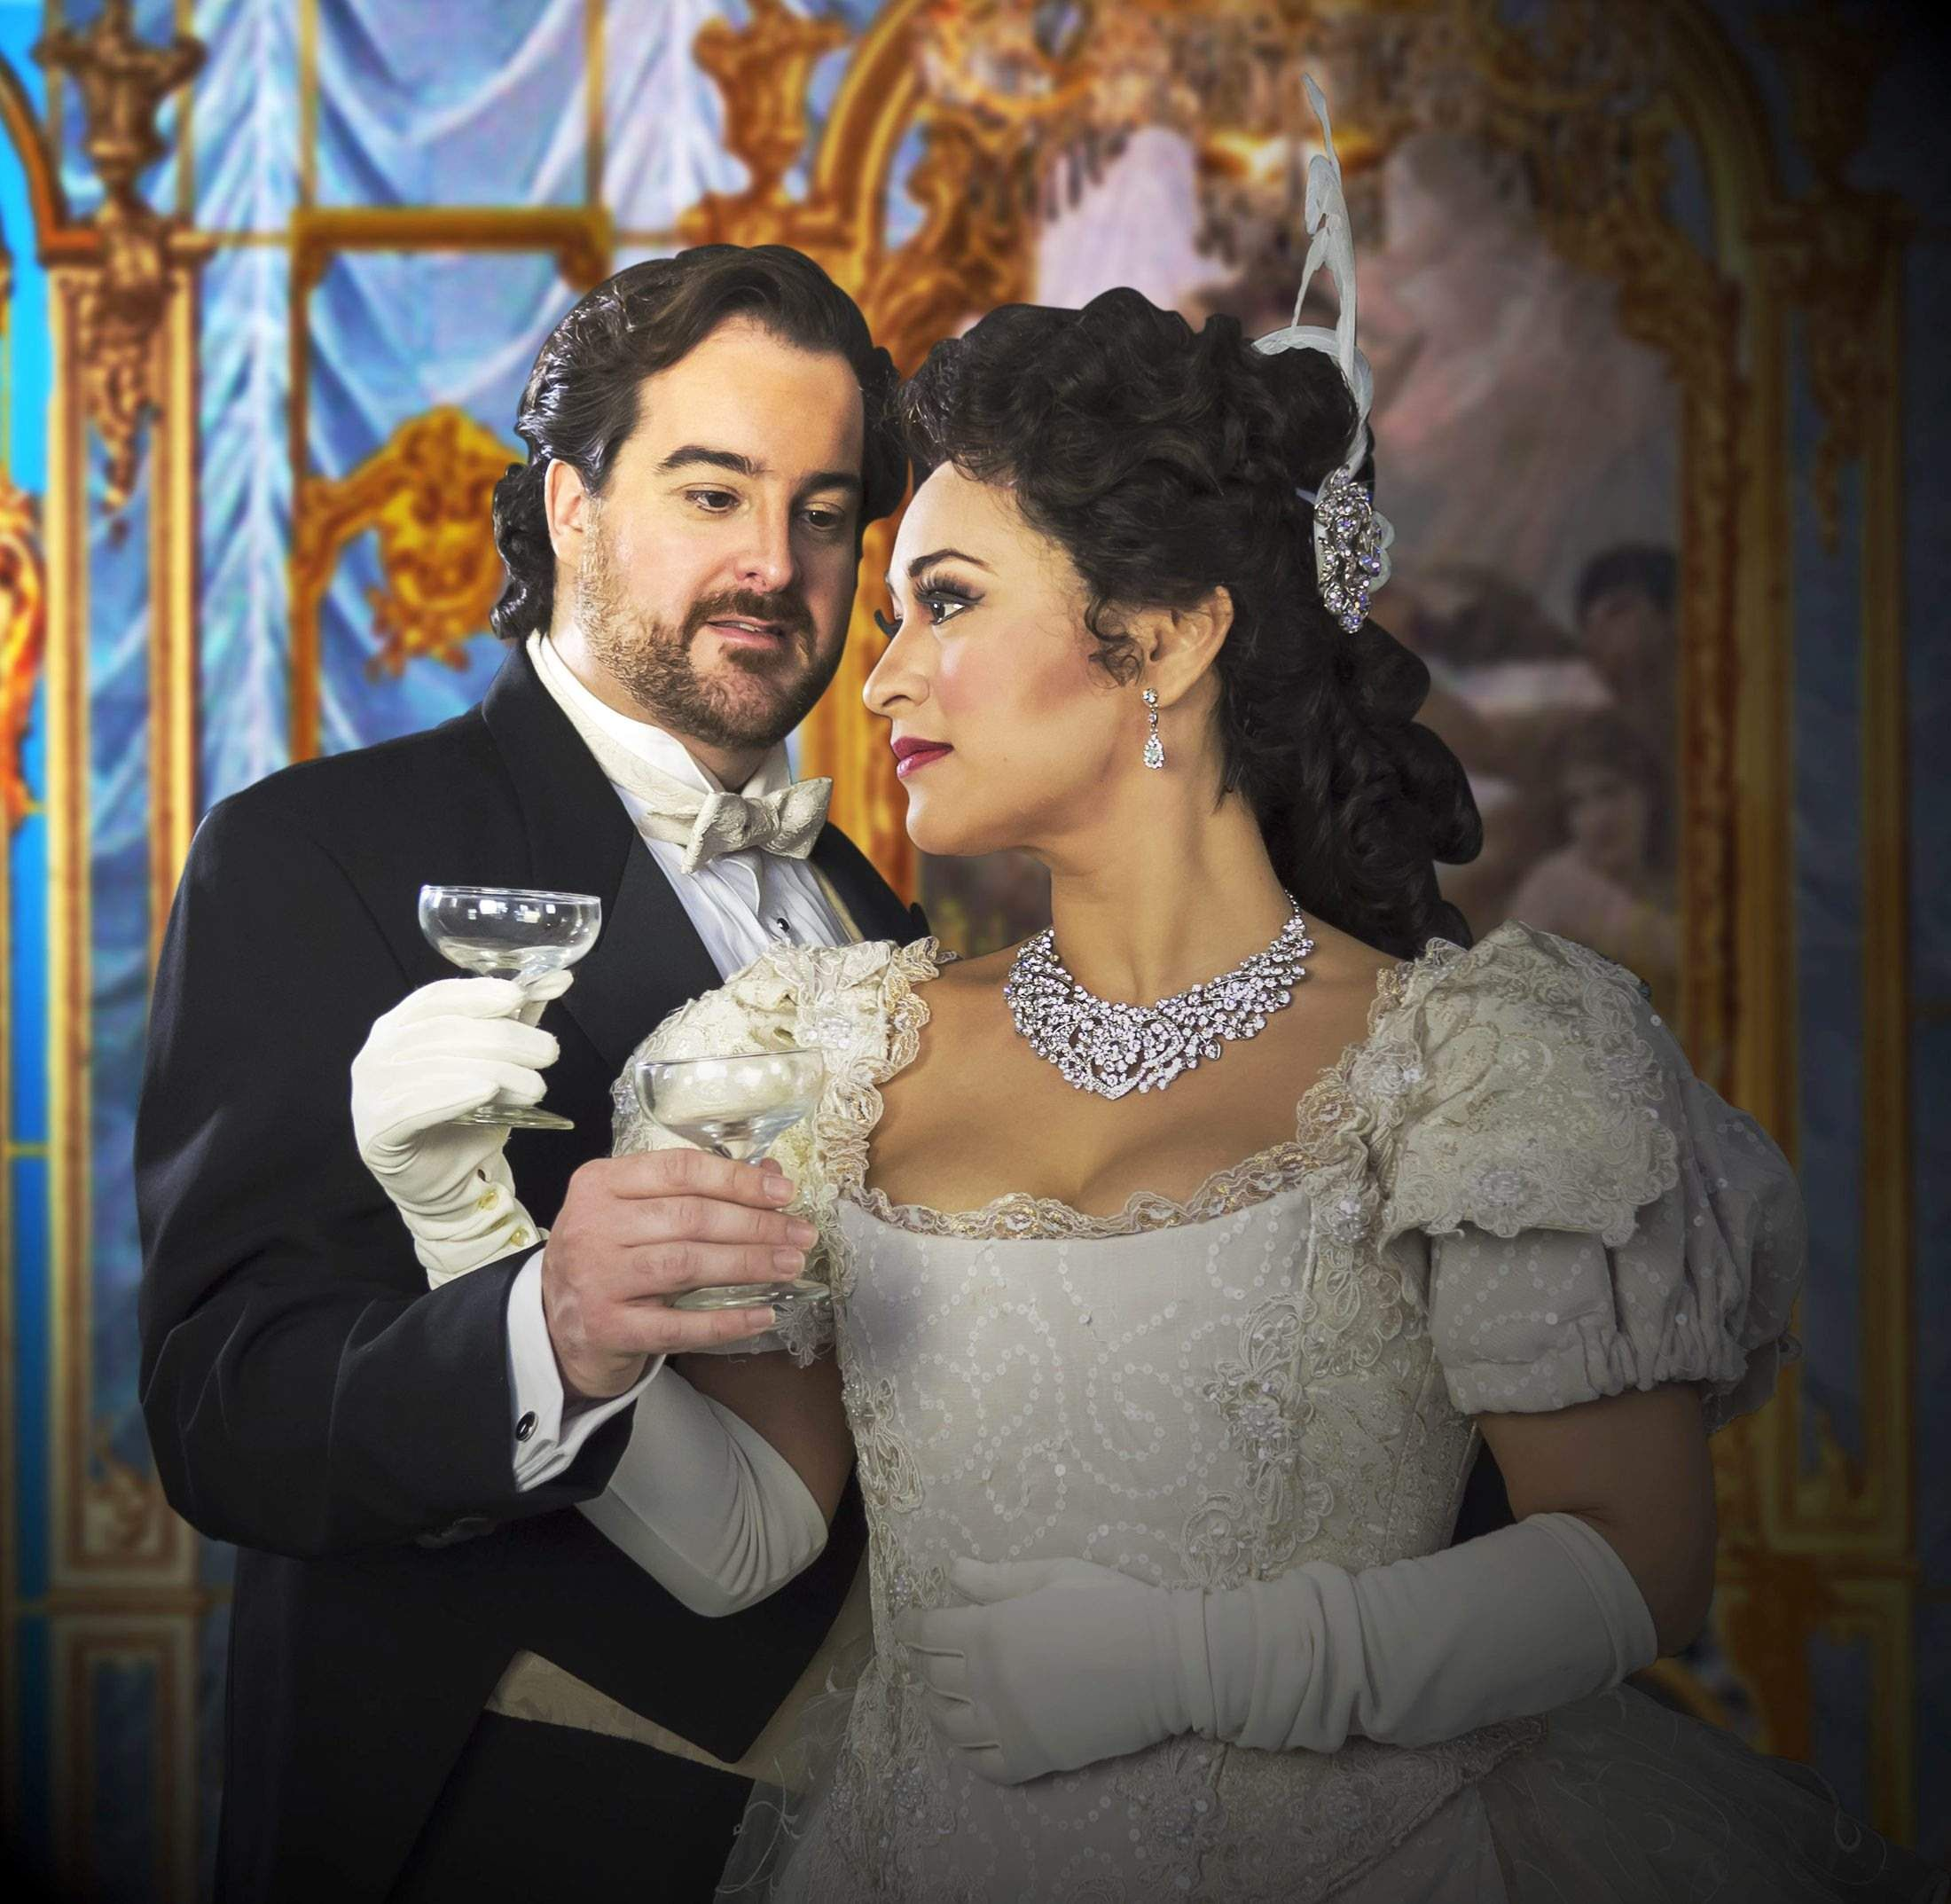 """Feature in Fairfax Times: """"It's the ultimate art form — opera. At least that's the opinion of Rolando Sanz, the nationally acclaimed, locally born opera singer who will debut with the Virginia Opera as the lead male role in the opening of Giuseppi Verdi's """"La Traviata."""" Sanz, a Rockville, Md., native, will play the tenor role of bourgeois Alfredo Germont, and to hear him speak of it in the buildup to the show is akin to hearing a man profess a love that's still fresh. """"It's the water I drink…"""